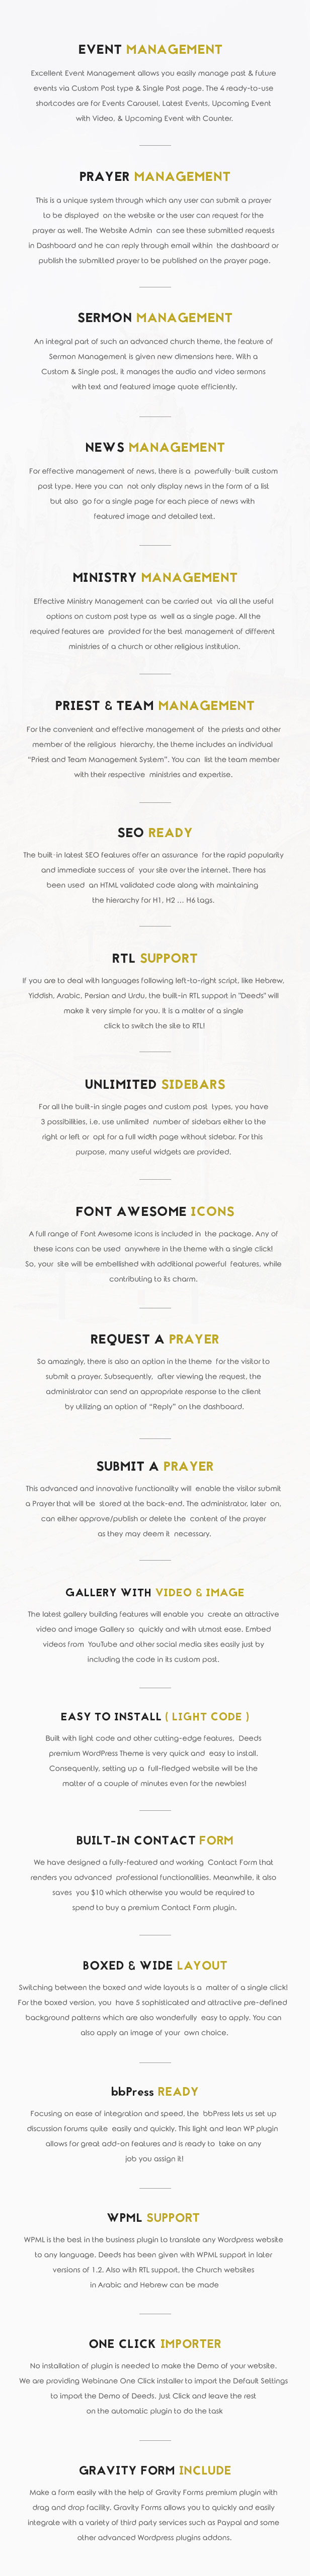 Deeds - Best Responsive Nonprofit Church WordPress Theme - 4